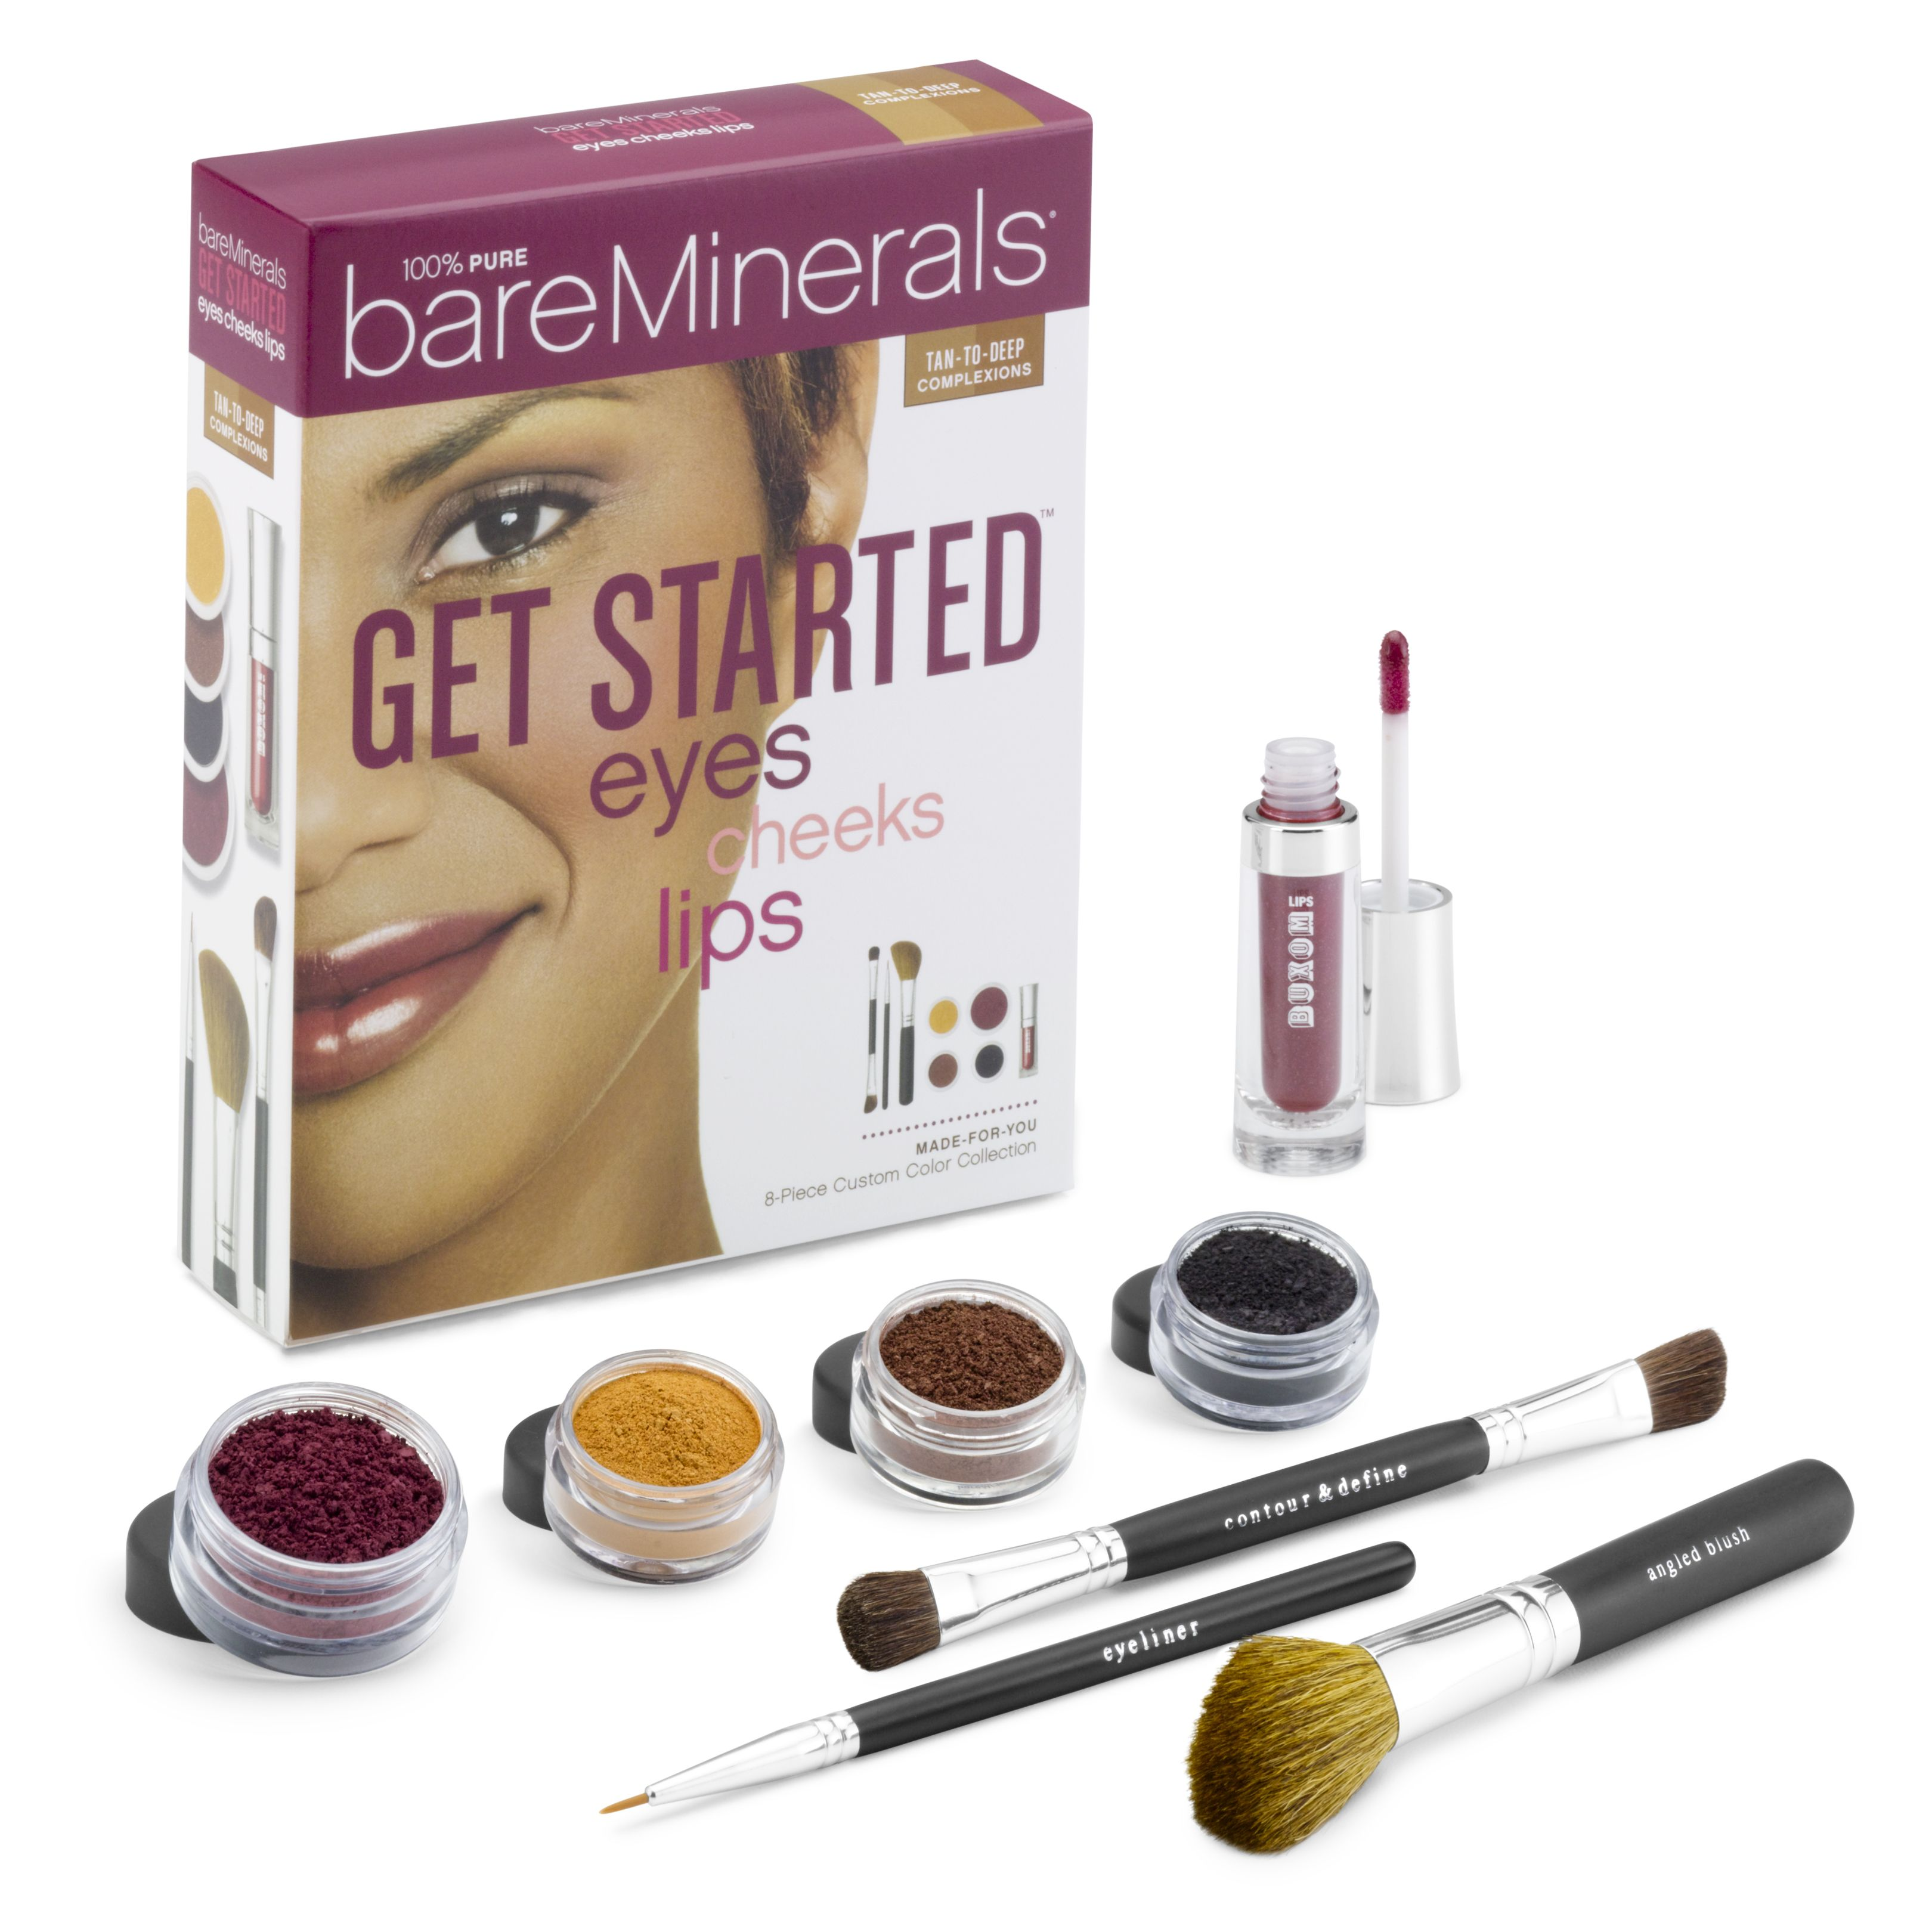 Get Started™ Eyes Cheeks Lips- Tan to Deep